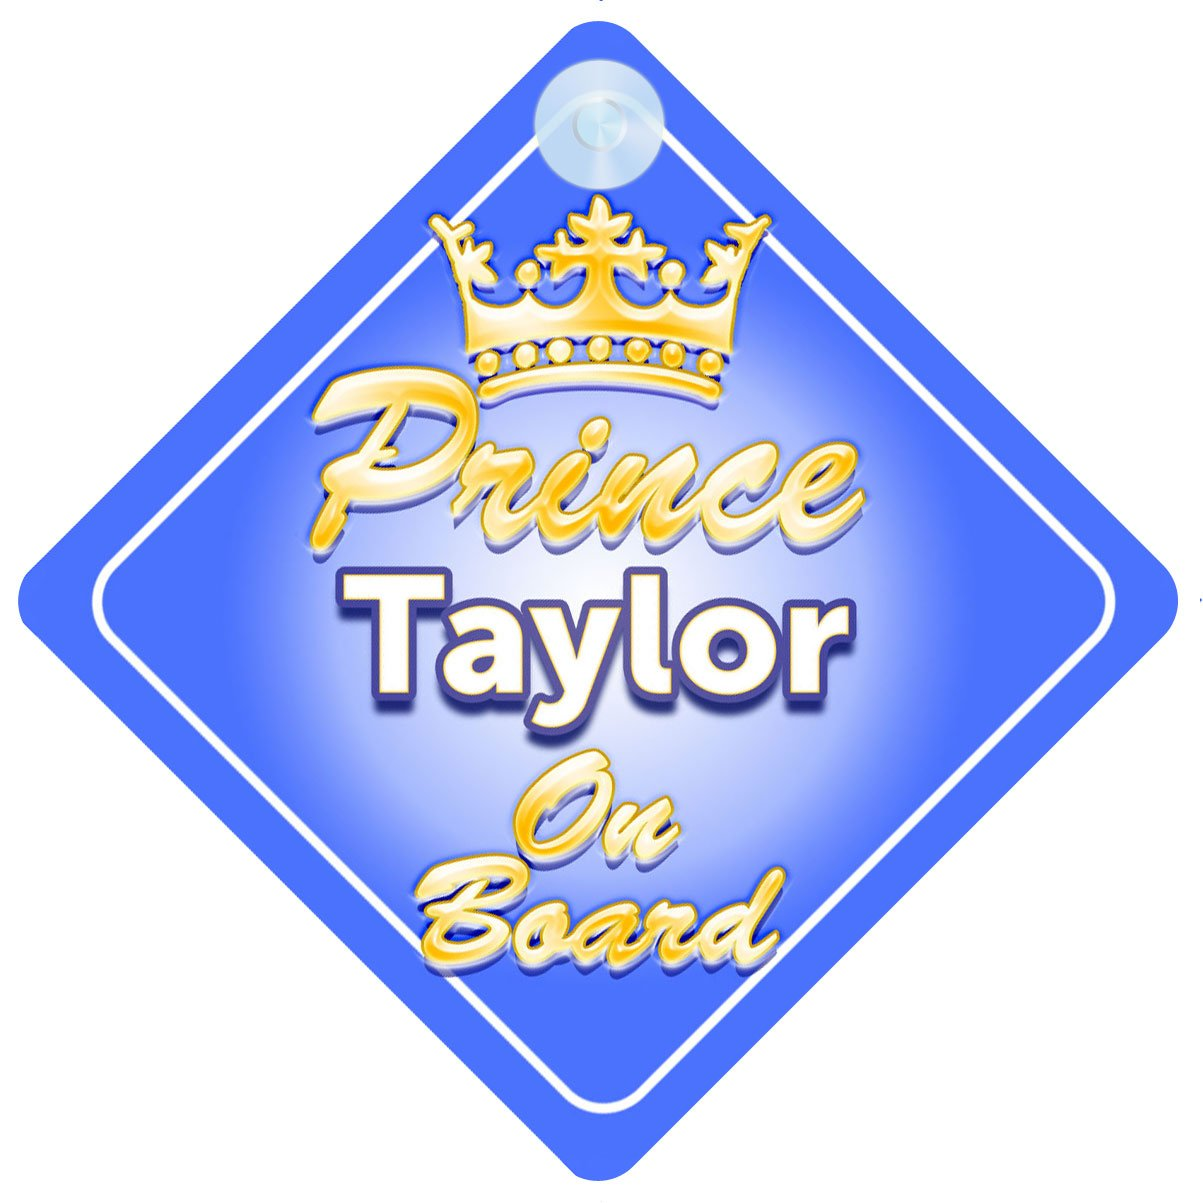 Crown Prince Taylor On Board Personalised Baby / Child Boys Car Sign Quality Goods Ltd